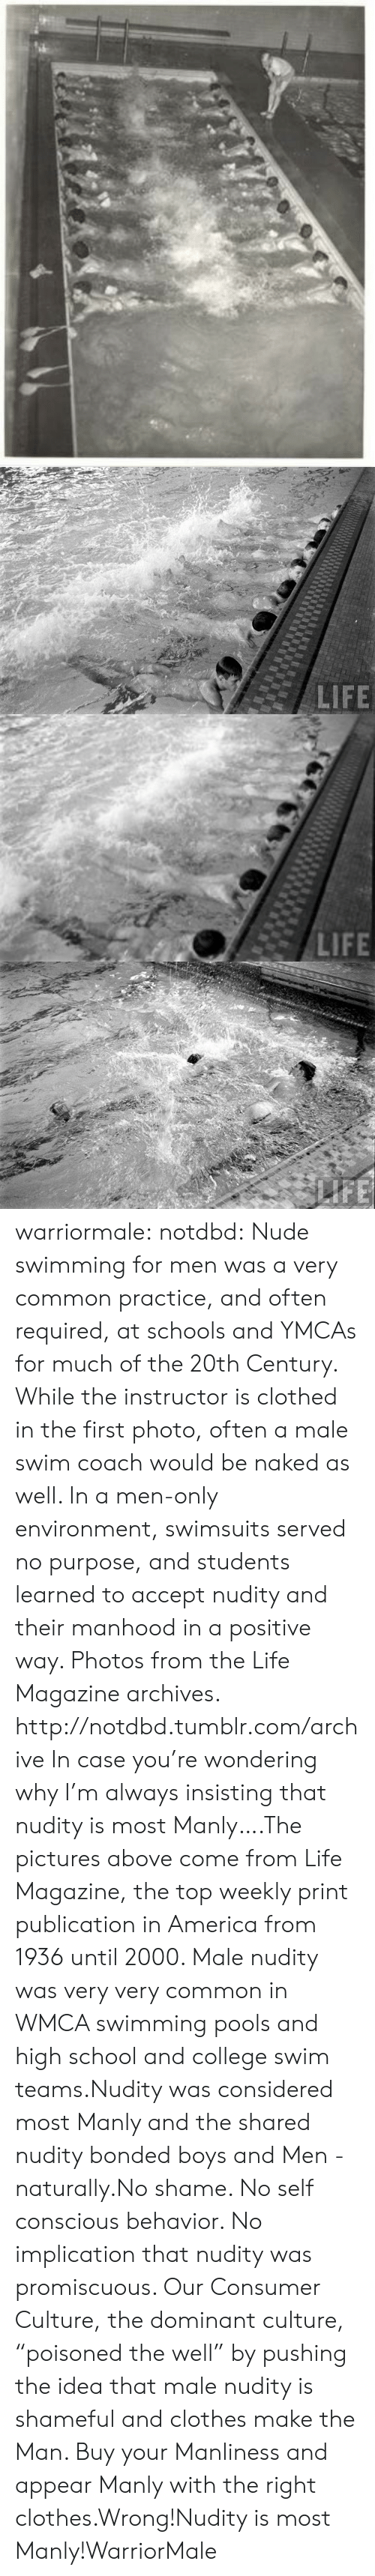 "America, Clothes, and College: warriormale:  notdbd: Nude swimming for men was a very common practice, and often required, at schools and YMCAs for much of the 20th Century. While the instructor is clothed in the first photo, often a male swim coach would be naked as well. In a men-only environment, swimsuits served no purpose, and students learned to accept nudity and their manhood in a positive way. Photos from the Life Magazine archives.   http://notdbd.tumblr.com/archive  In case you're wondering why I'm always insisting that nudity is most Manly….The pictures above come from Life Magazine, the top weekly print publication in America from 1936 until 2000. Male nudity was very very common in WMCA swimming pools and high school and college swim teams.Nudity was considered most Manly and the shared nudity bonded boys and Men -  naturally.No shame. No self conscious behavior. No implication that nudity was promiscuous. Our Consumer Culture, the dominant culture,  ""poisoned the well"" by pushing the idea that male nudity is shameful and clothes make the Man. Buy your Manliness and appear Manly with the right clothes.Wrong!Nudity is most Manly!WarriorMale"